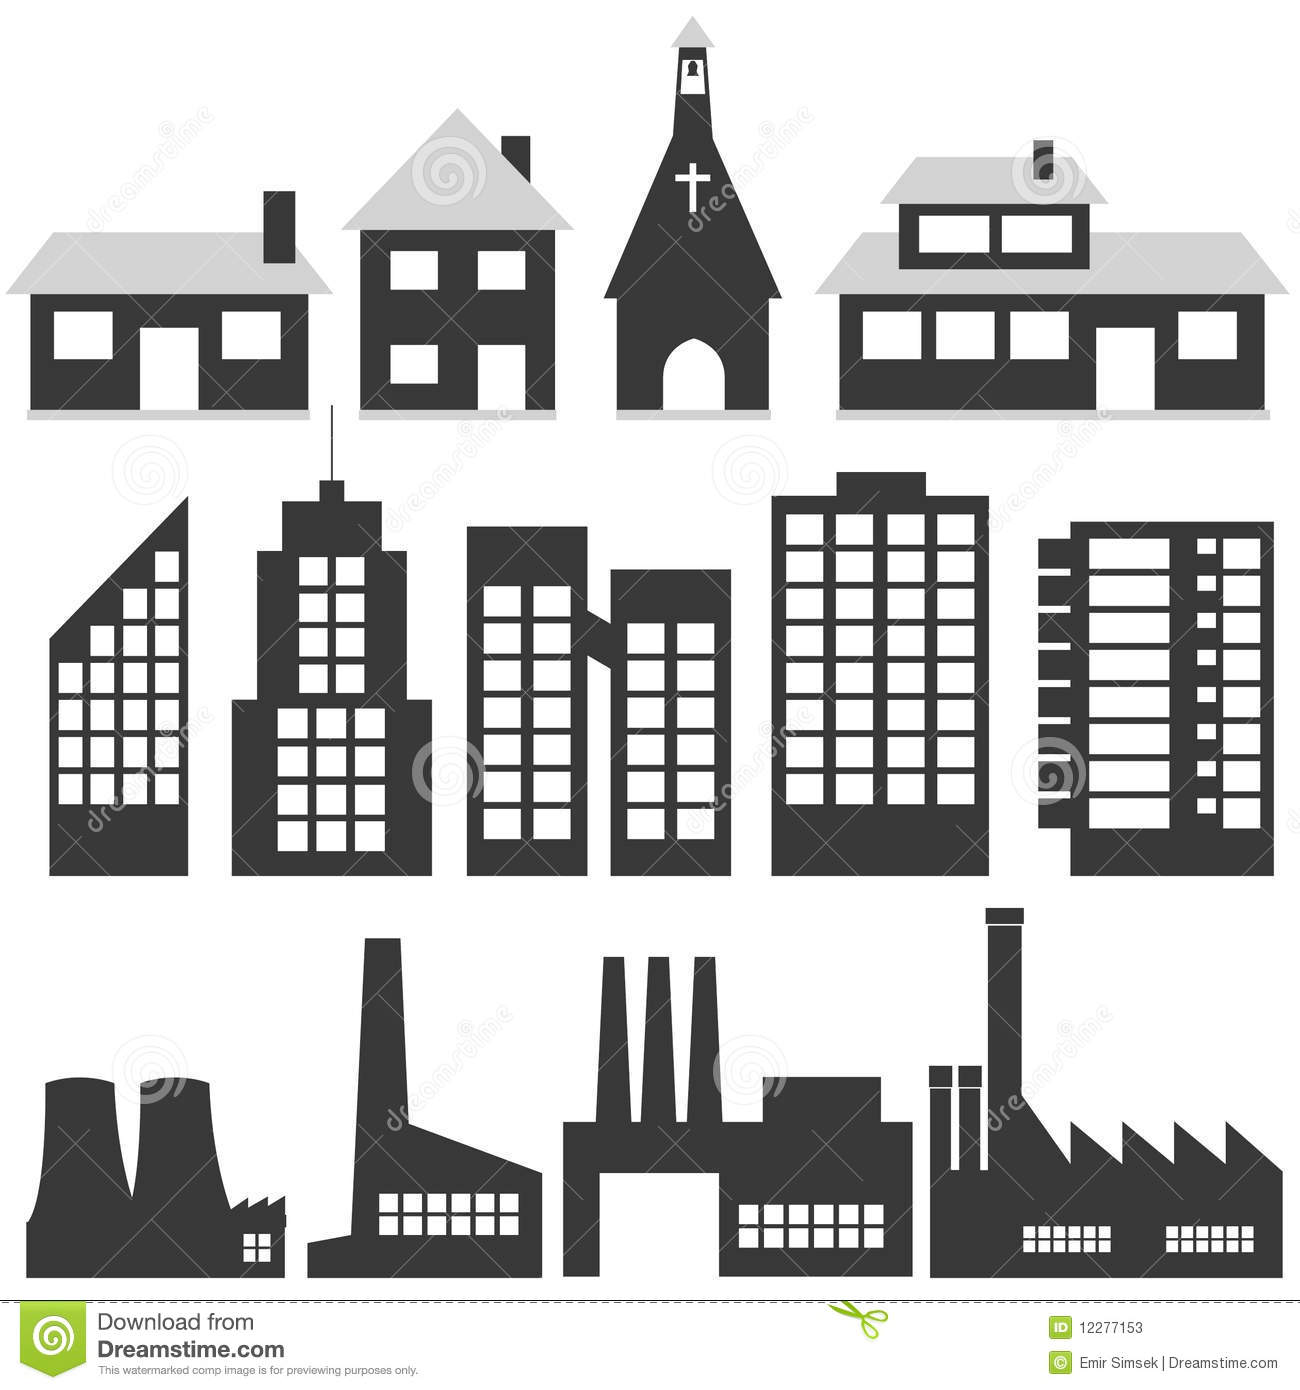 united states map black and white with Stock Photos Building Illustrations Image12277153 on Stock Illustration Colorful Black White Eraser Coloring Book Illustration Isolated Image49725657 besides Map additionally S itts additionally Stock Photography Quality Service Certificate Image1803152 in addition Lt.